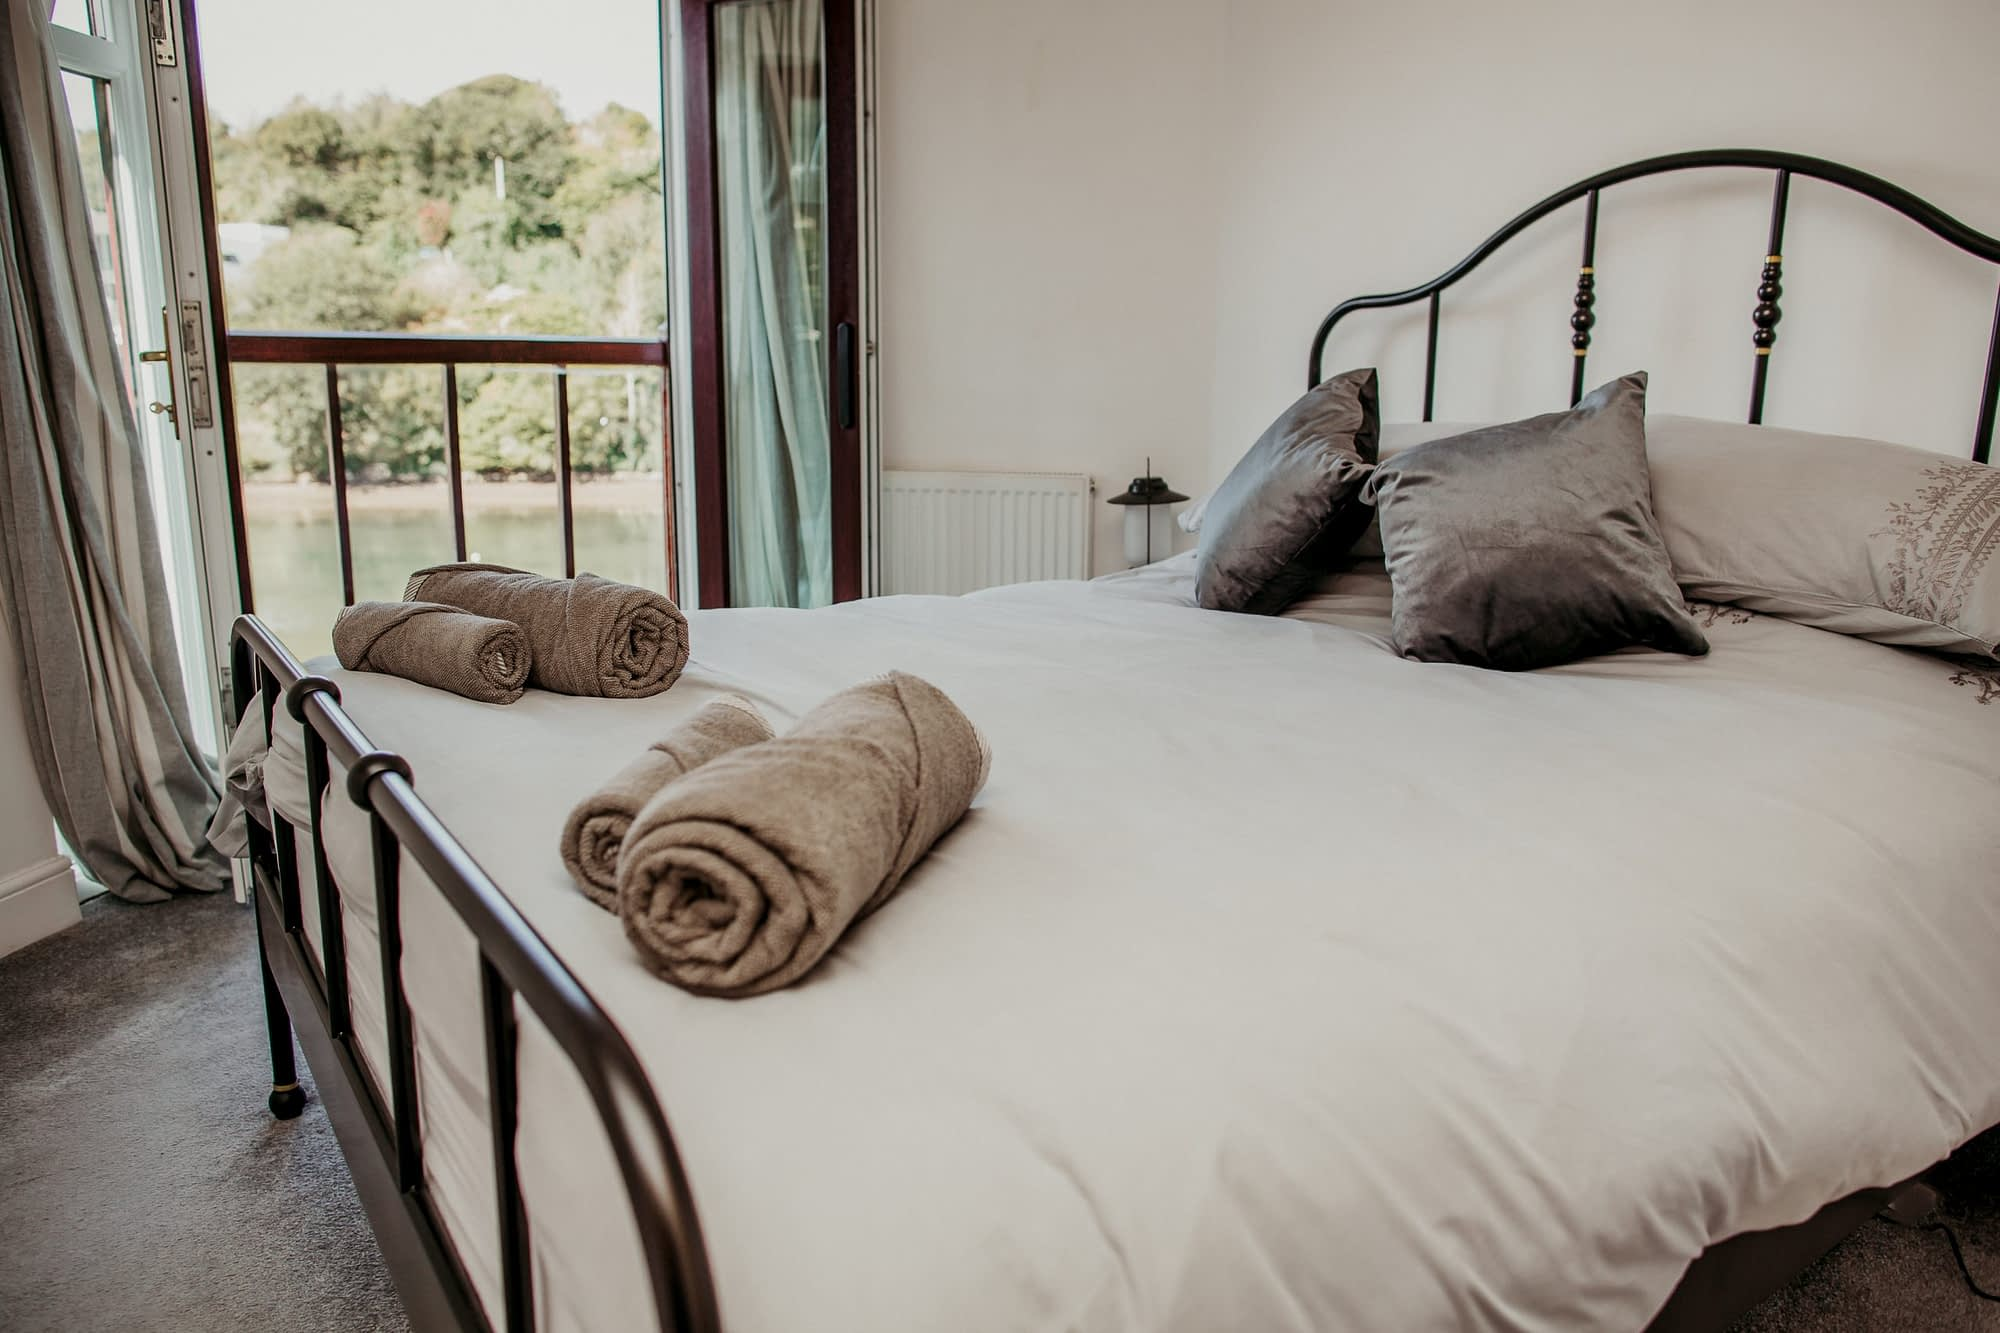 River View - Anchor Cottage - Holiday Cottages Noss Mayo